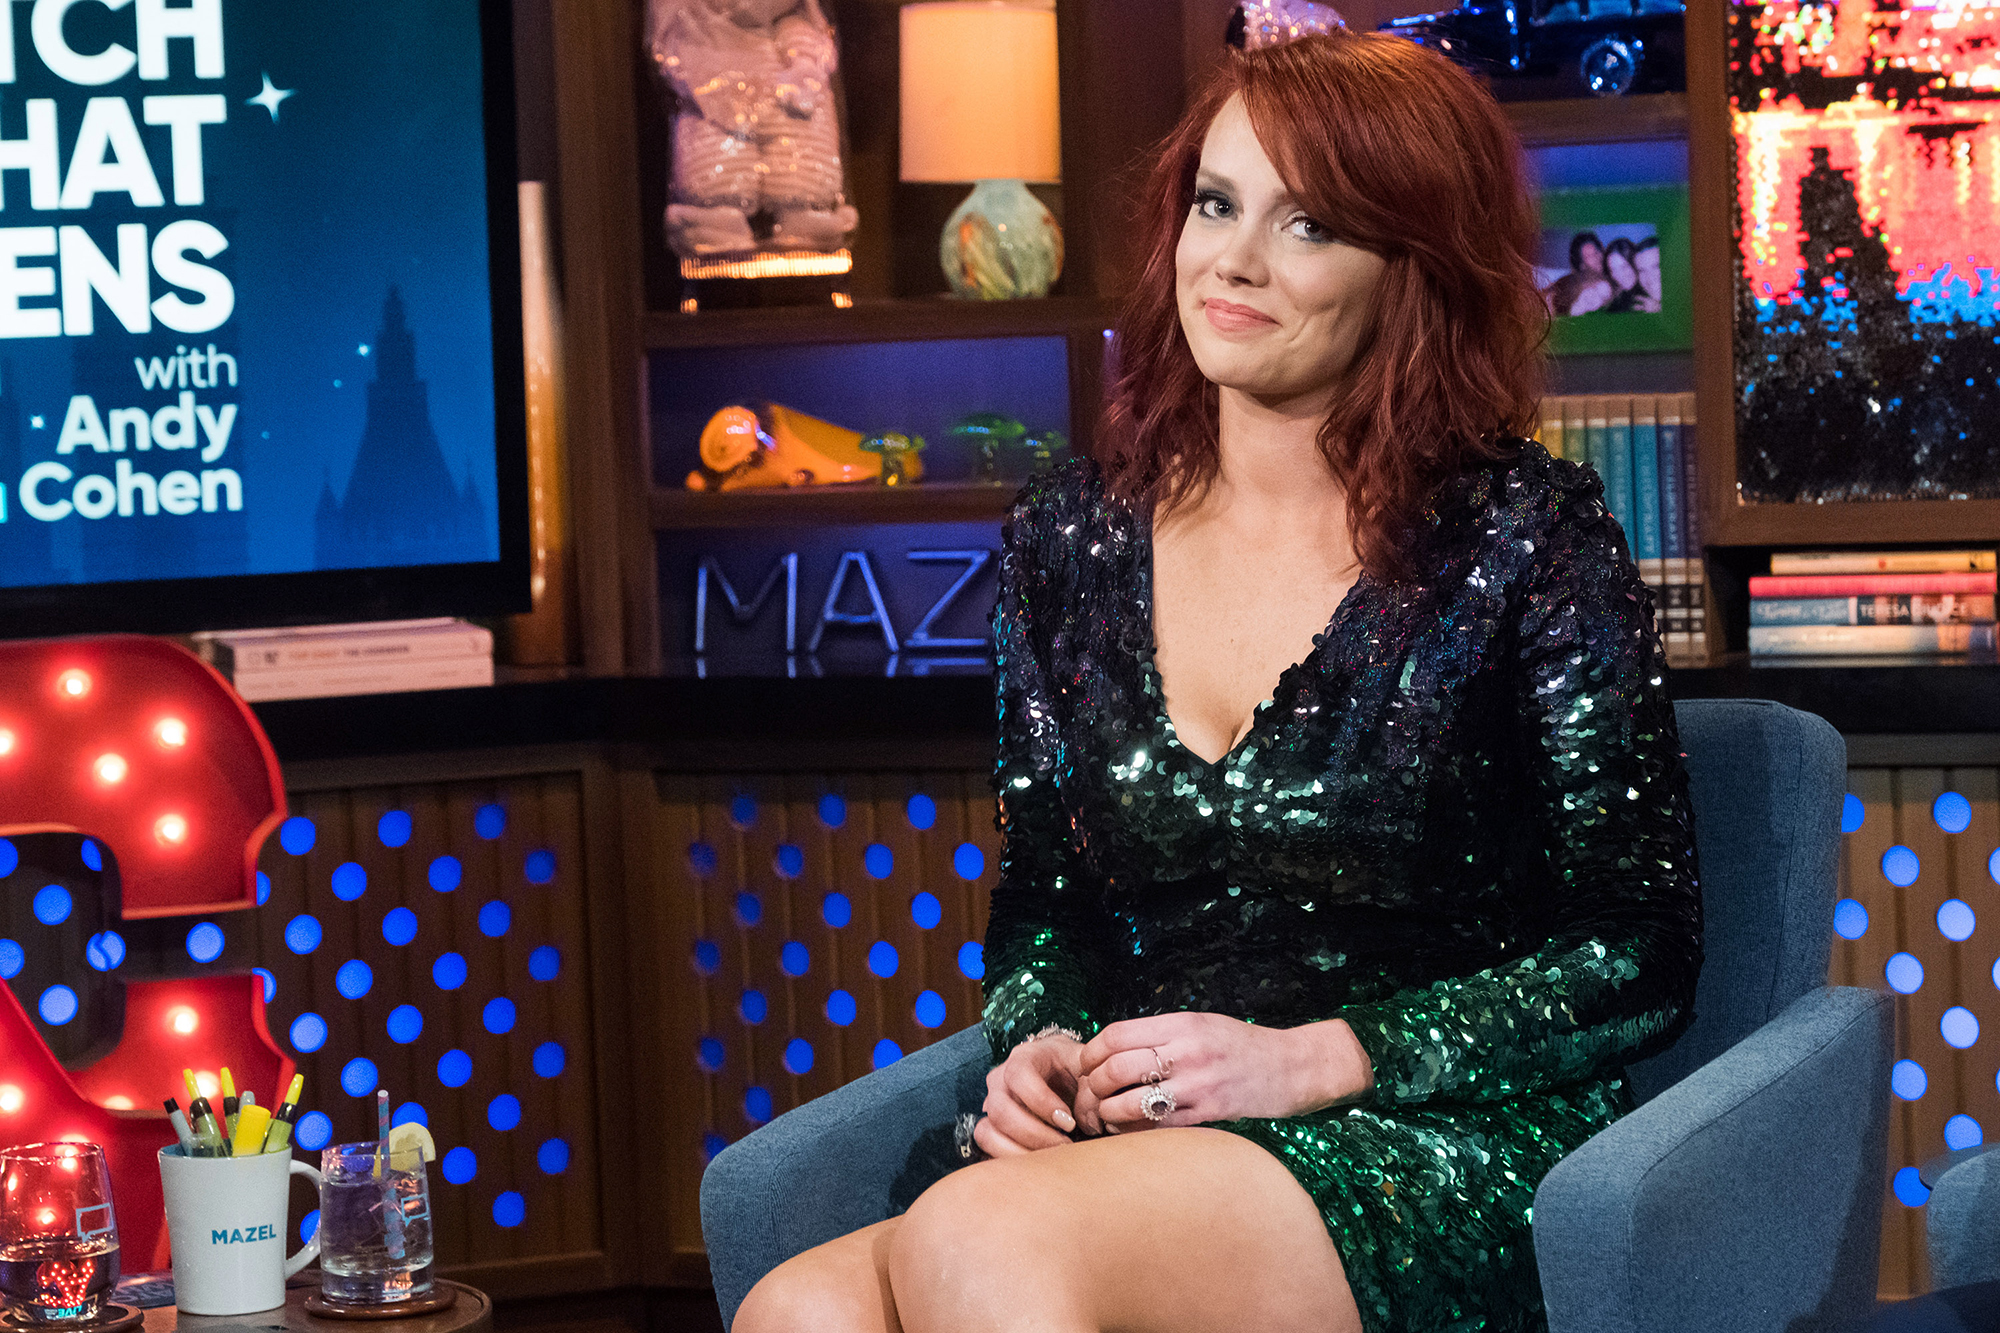 """Kathryn Dennis Claps Back At Users Who Think She Looks Pregnant - The Southern Charm star hit back at Instagram commenters who said she looked pregnant in a Thanksgiving 2018 post. """"No I have just gained weight,"""" she replied."""